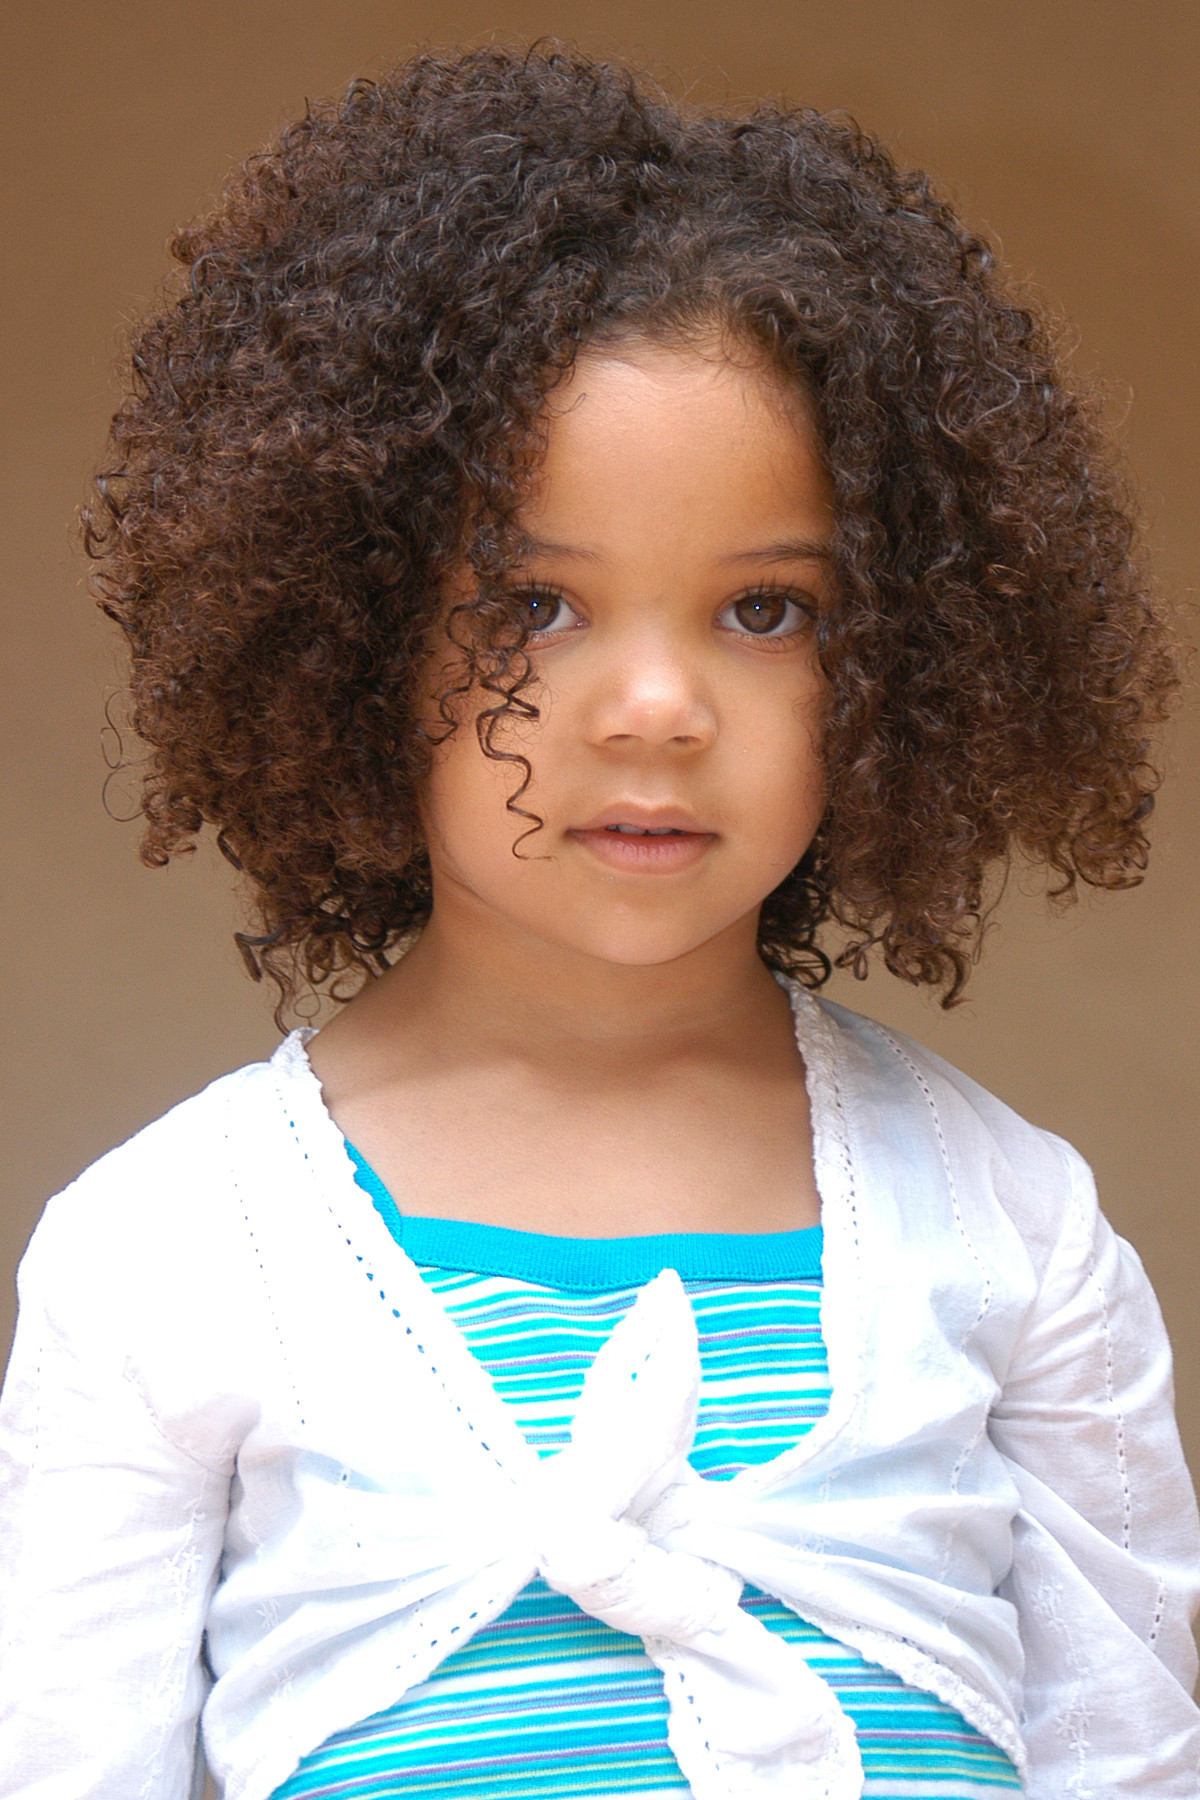 Best ideas about Curled Hairstyles For Kids . Save or Pin Different hair types Now.